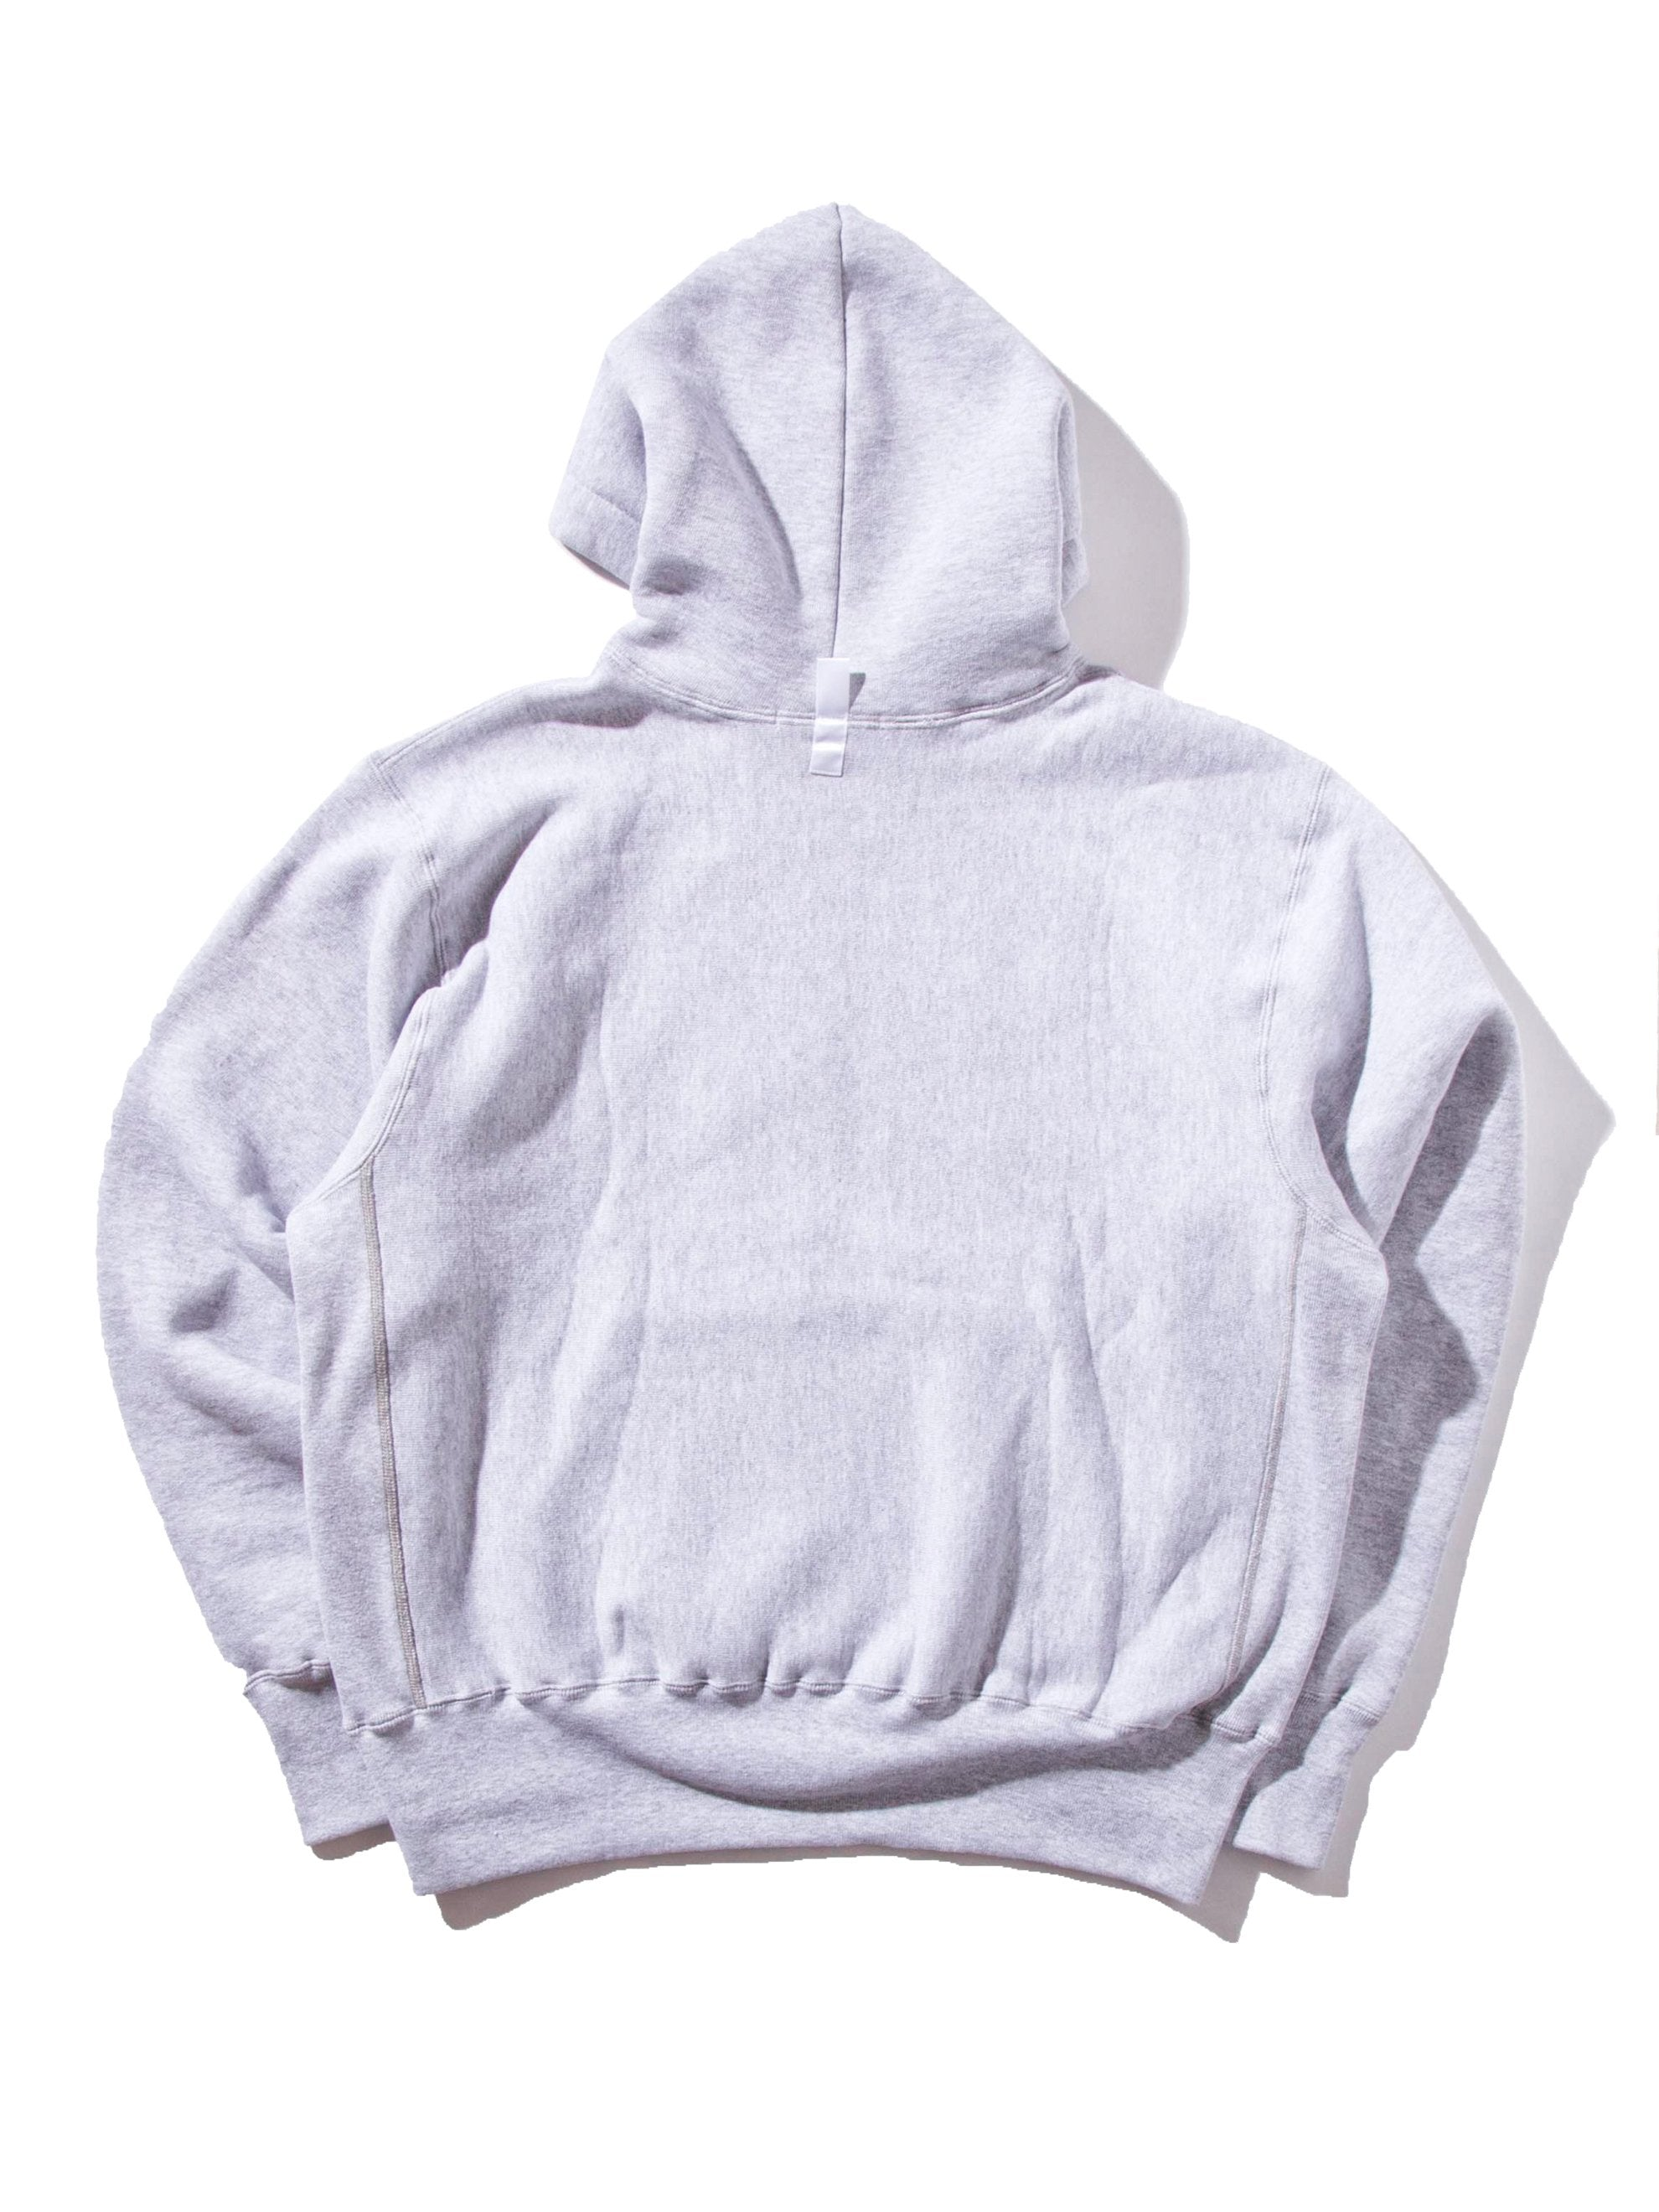 Heather Grey Soulmate Hooded Sweatshirt 7